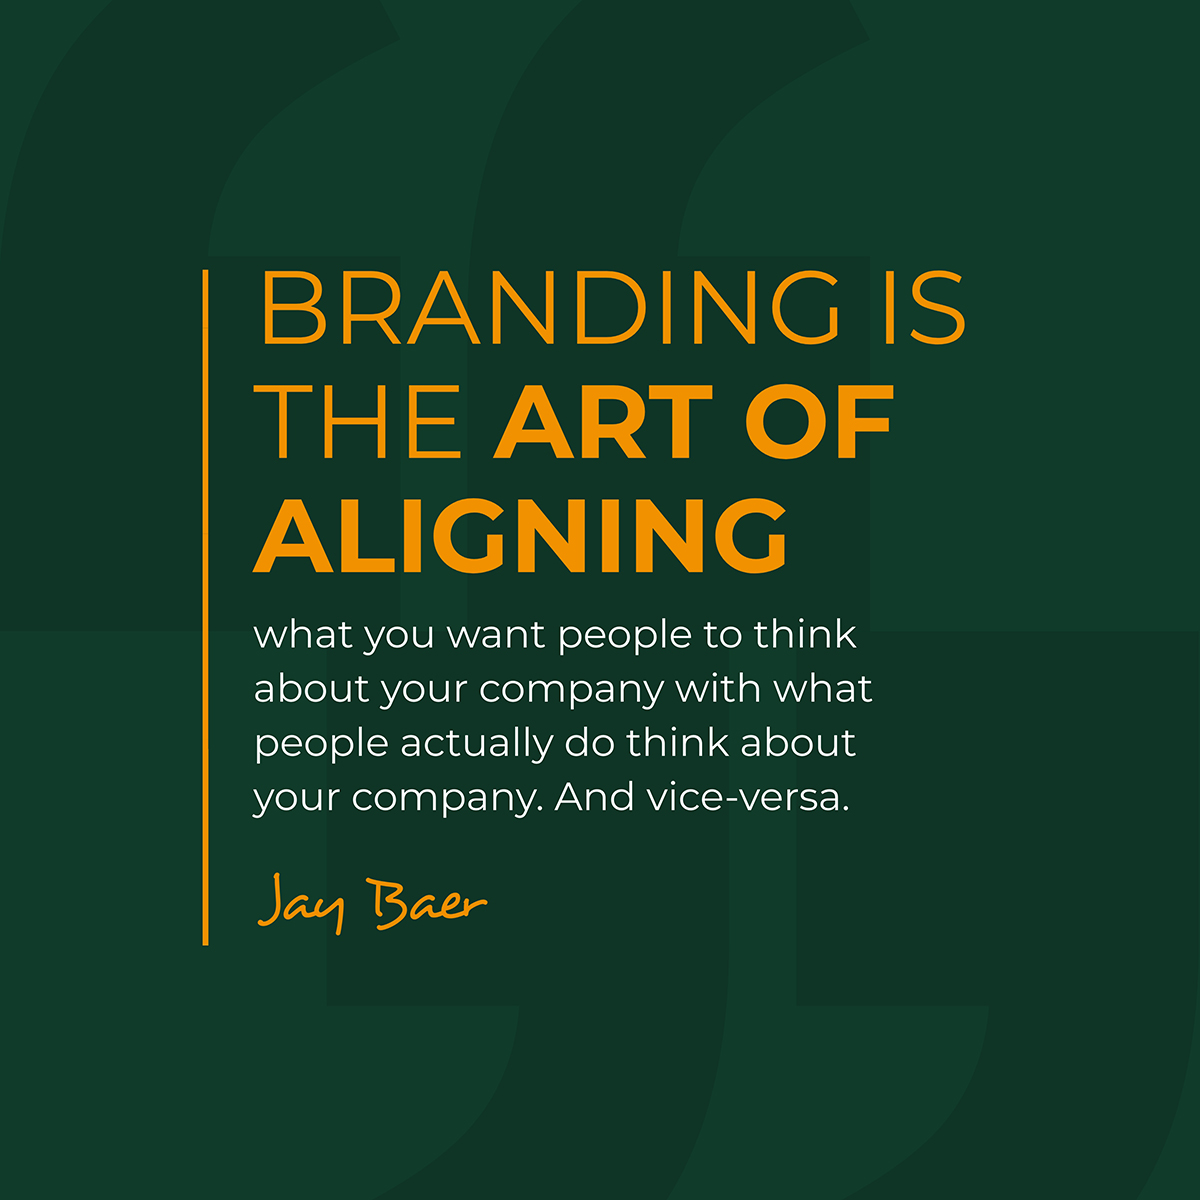 A quote about branding by Jay Baer.